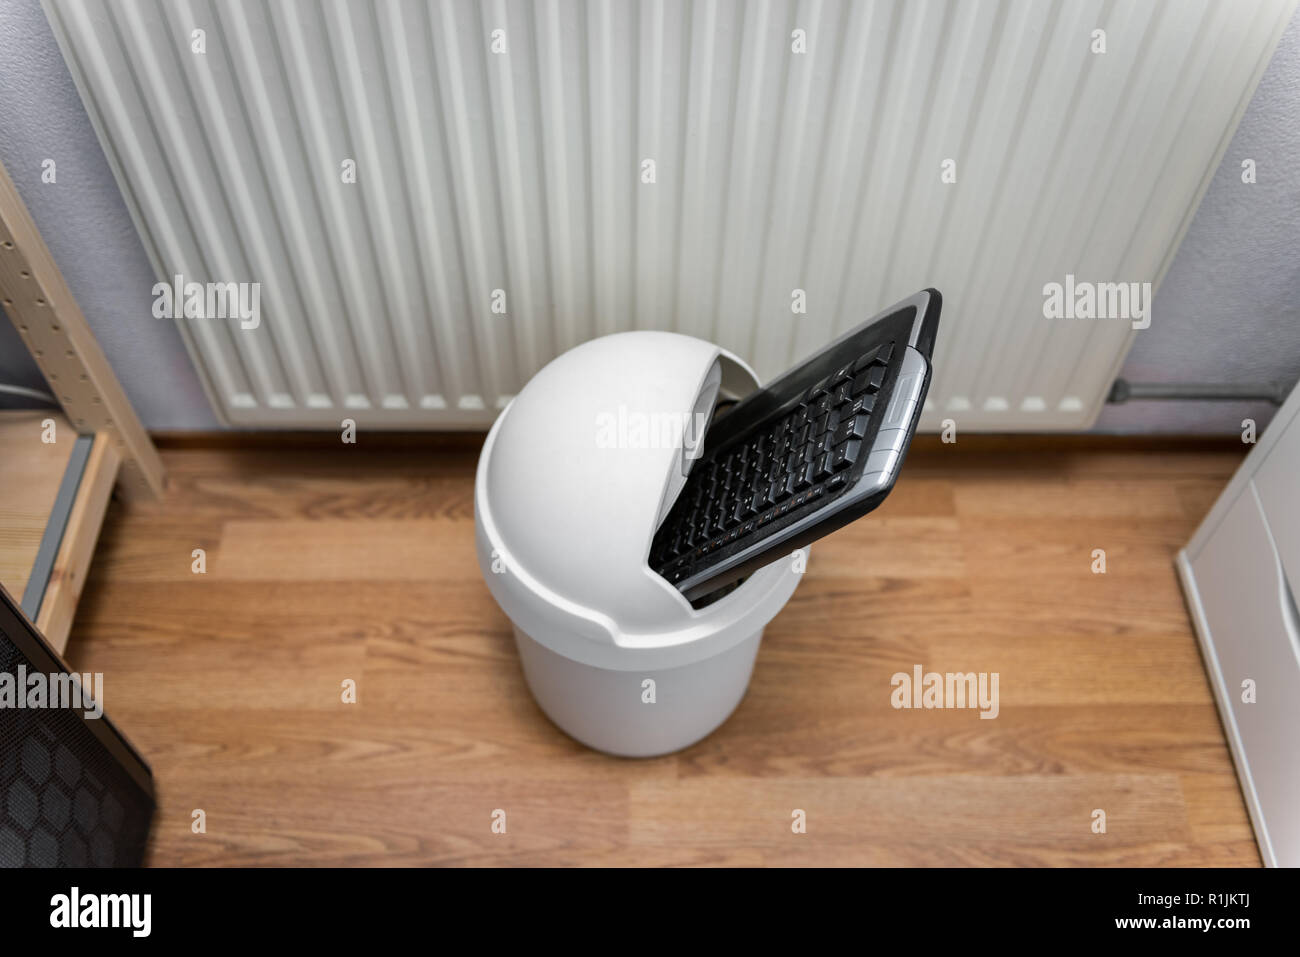 Computer Keyboard in Trash Can on Office Floor, looking down - Stock Image